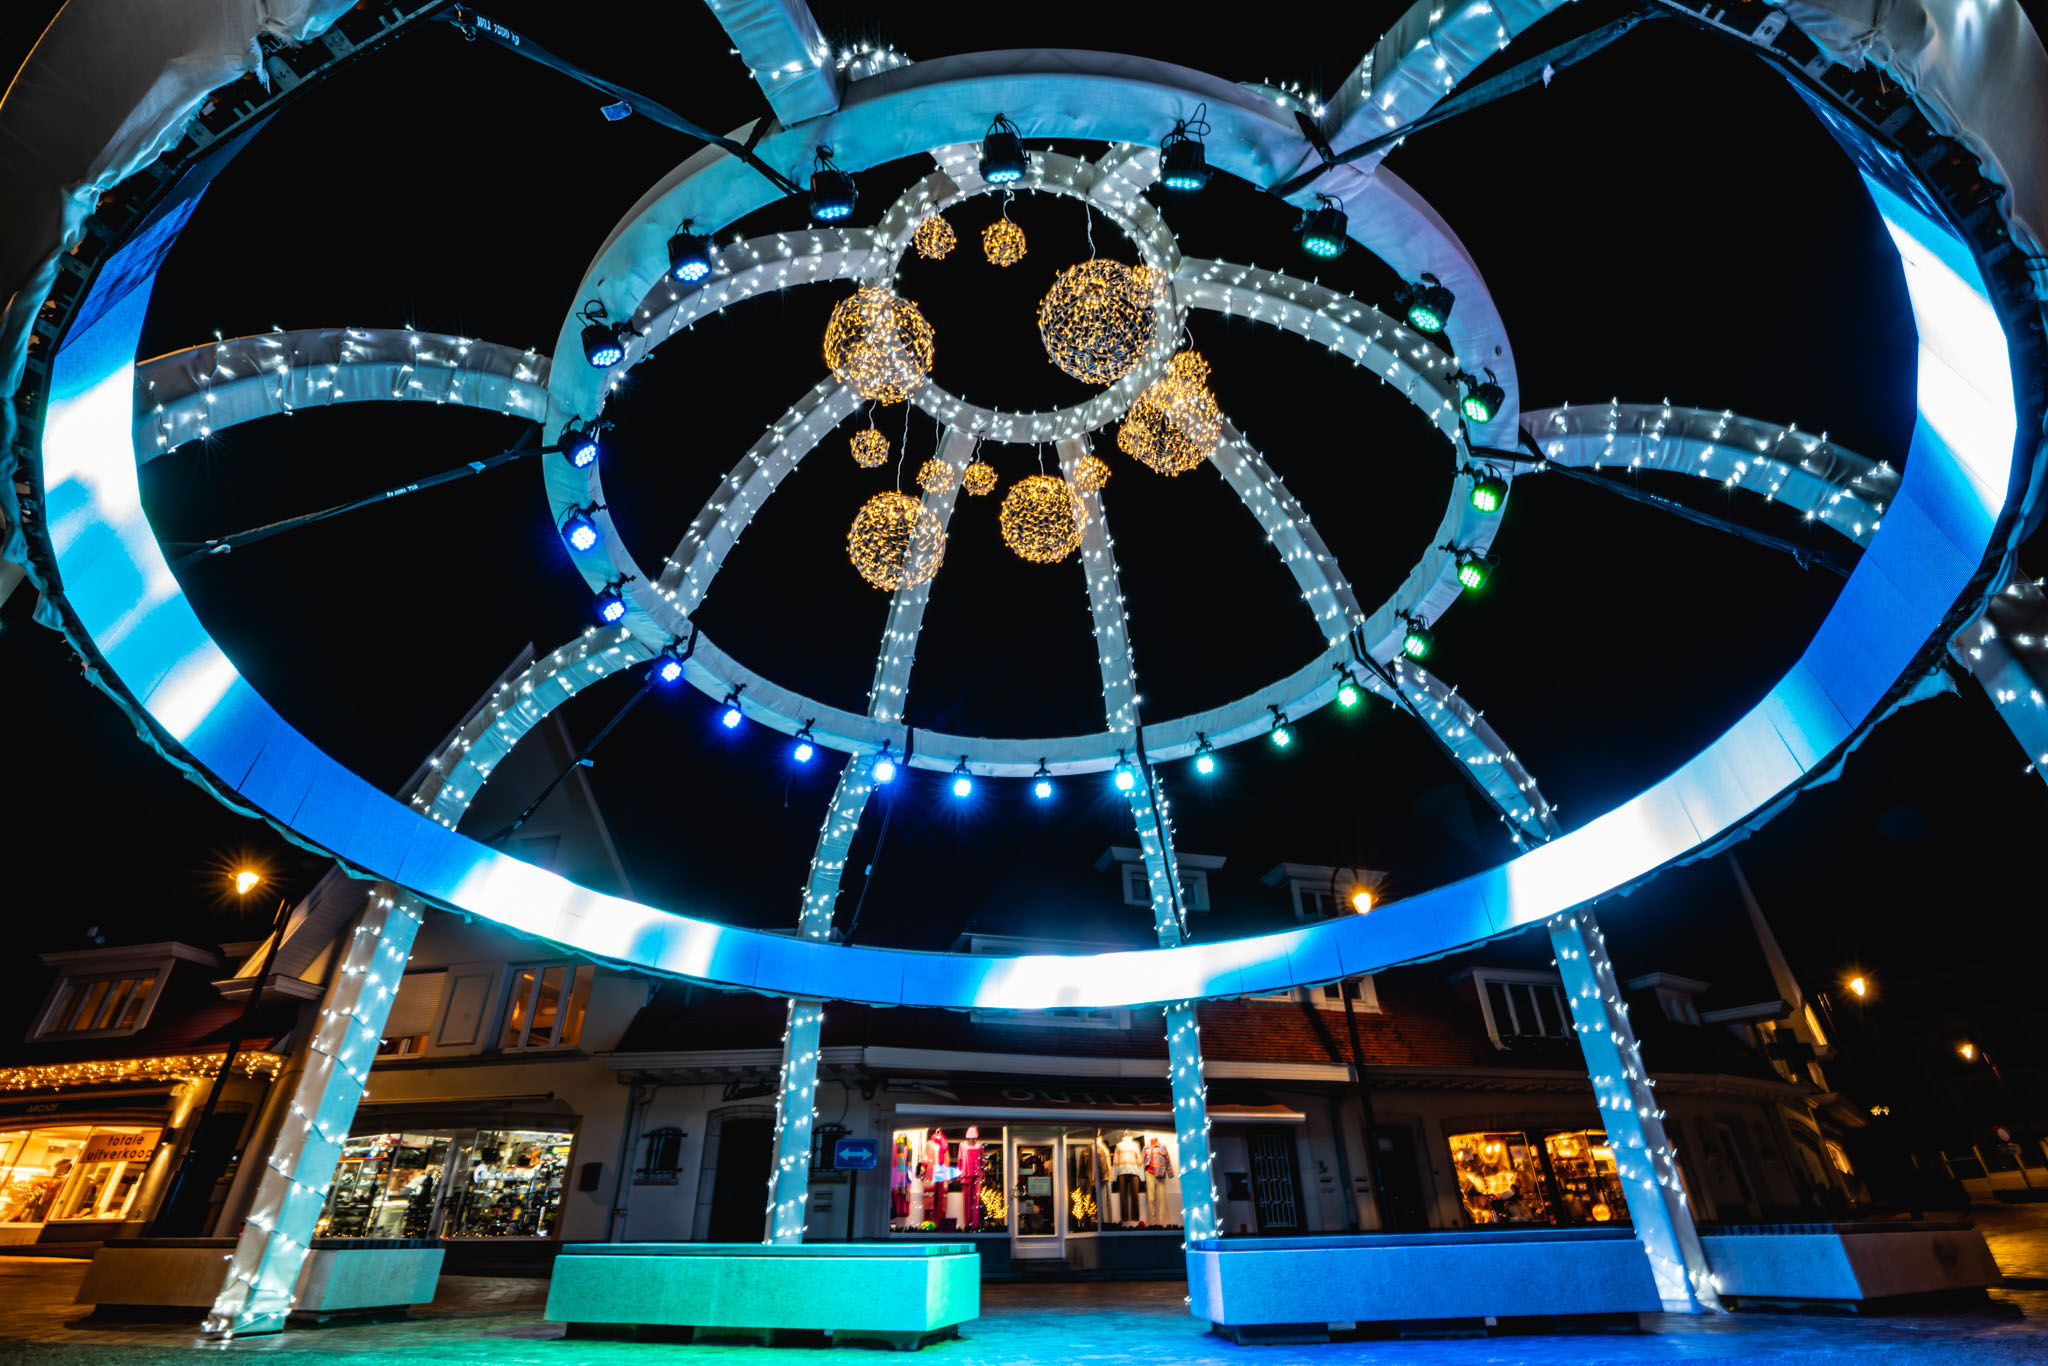 Winterlicht: a Light Experience during the Christmas Period